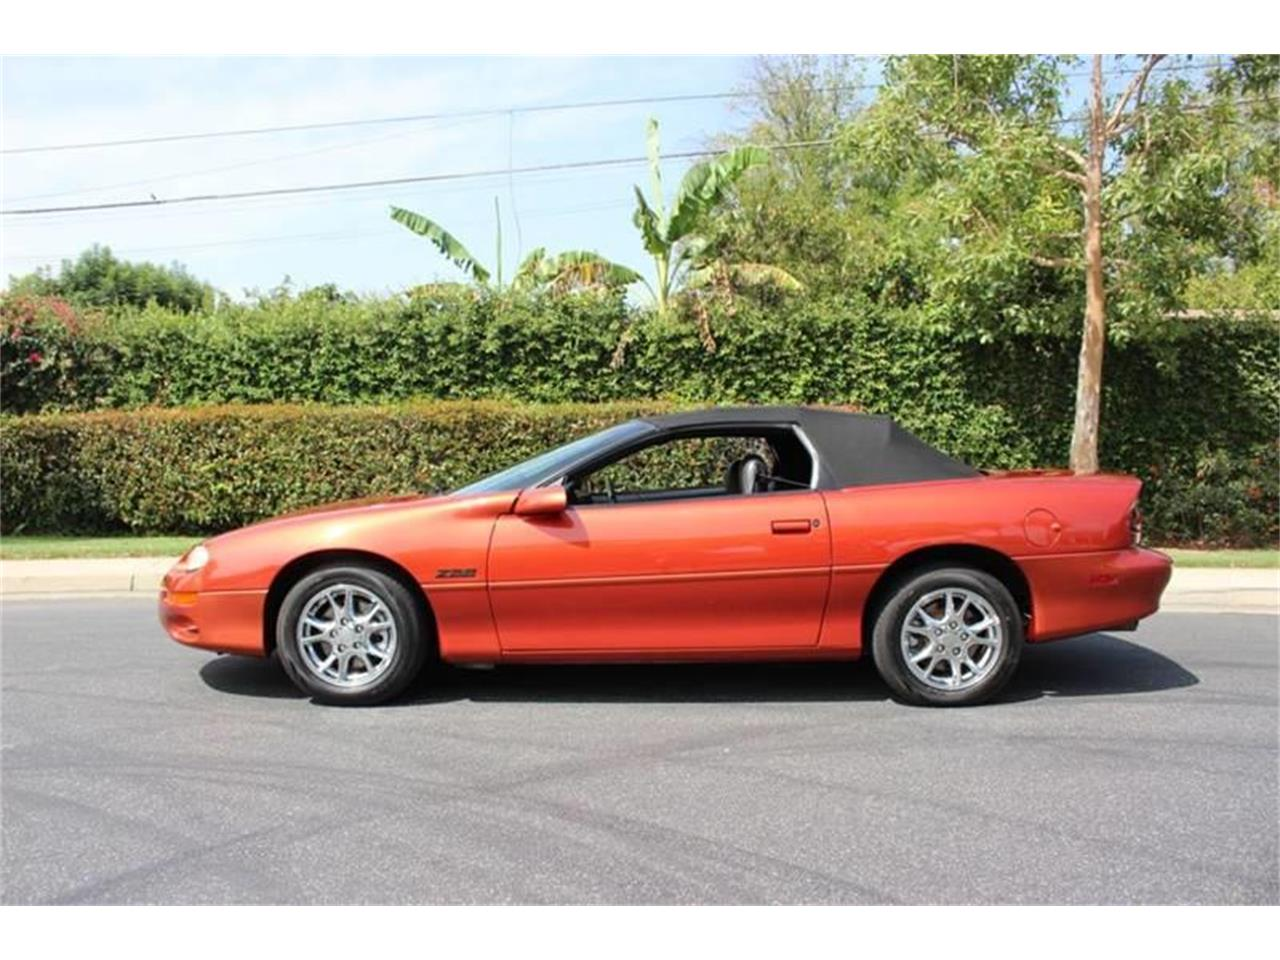 2002 Chevrolet Camaro (CC-1272886) for sale in La Verne, California